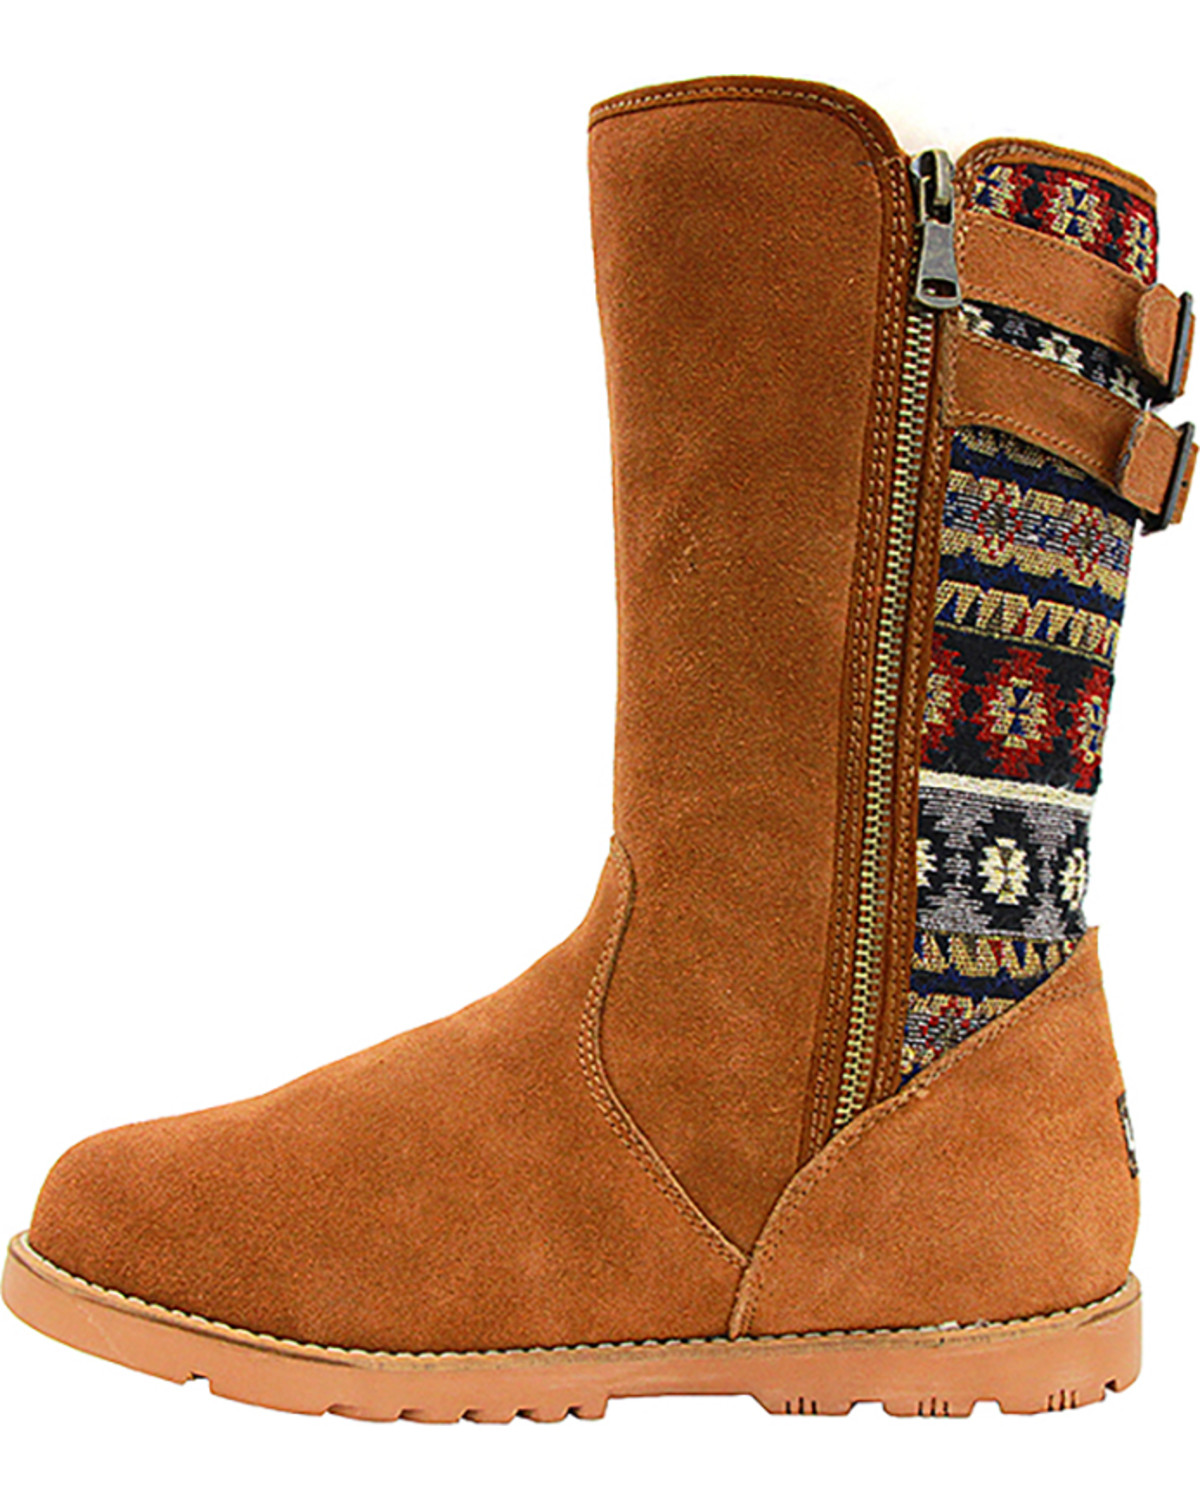 LAMO Melanie Women's Winter ... Boots